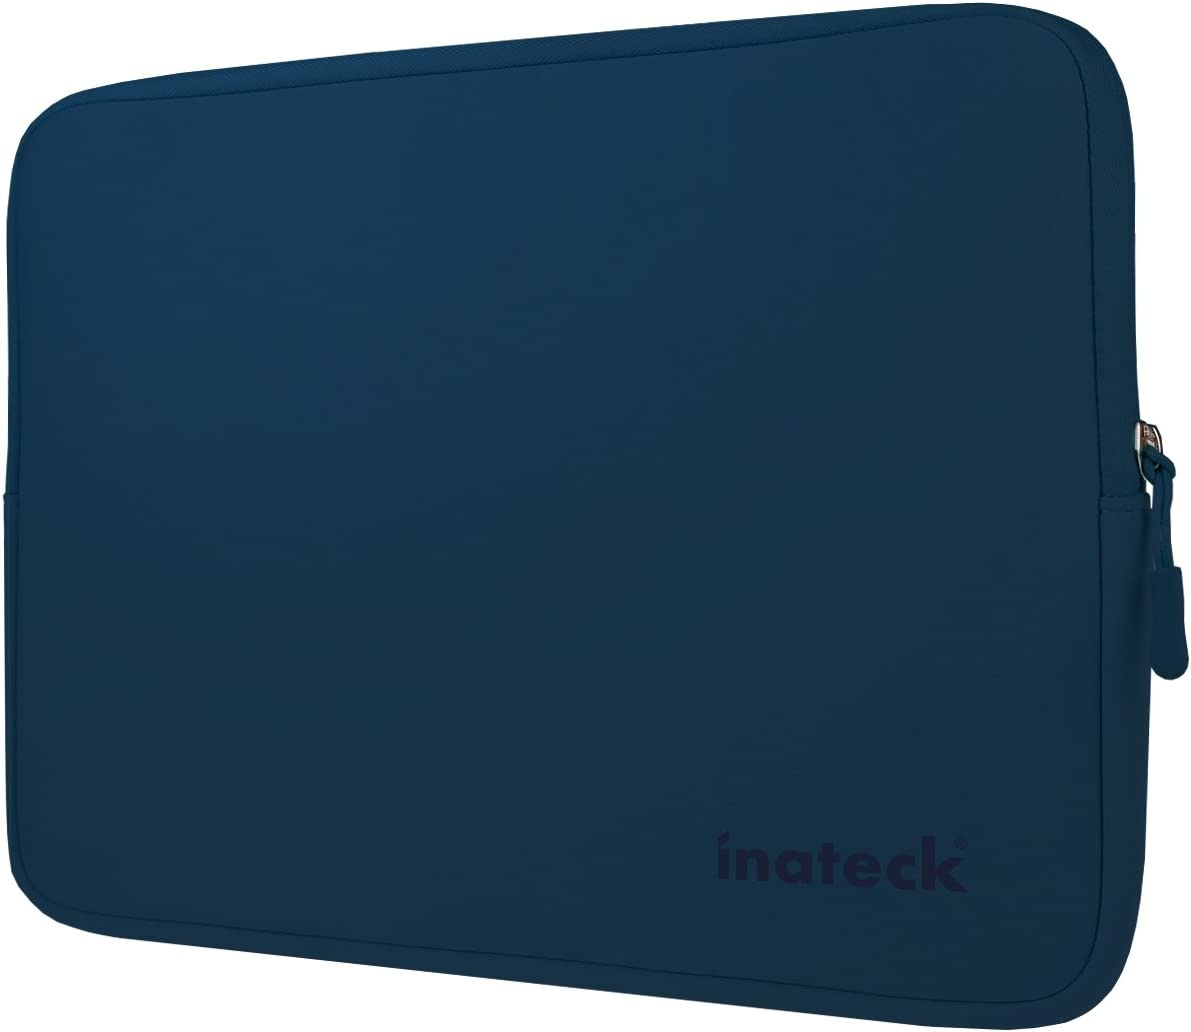 Inateck 15-15.6 Inch Water Repellent Neoprene Laptop Sleeve Protective Case - Blue